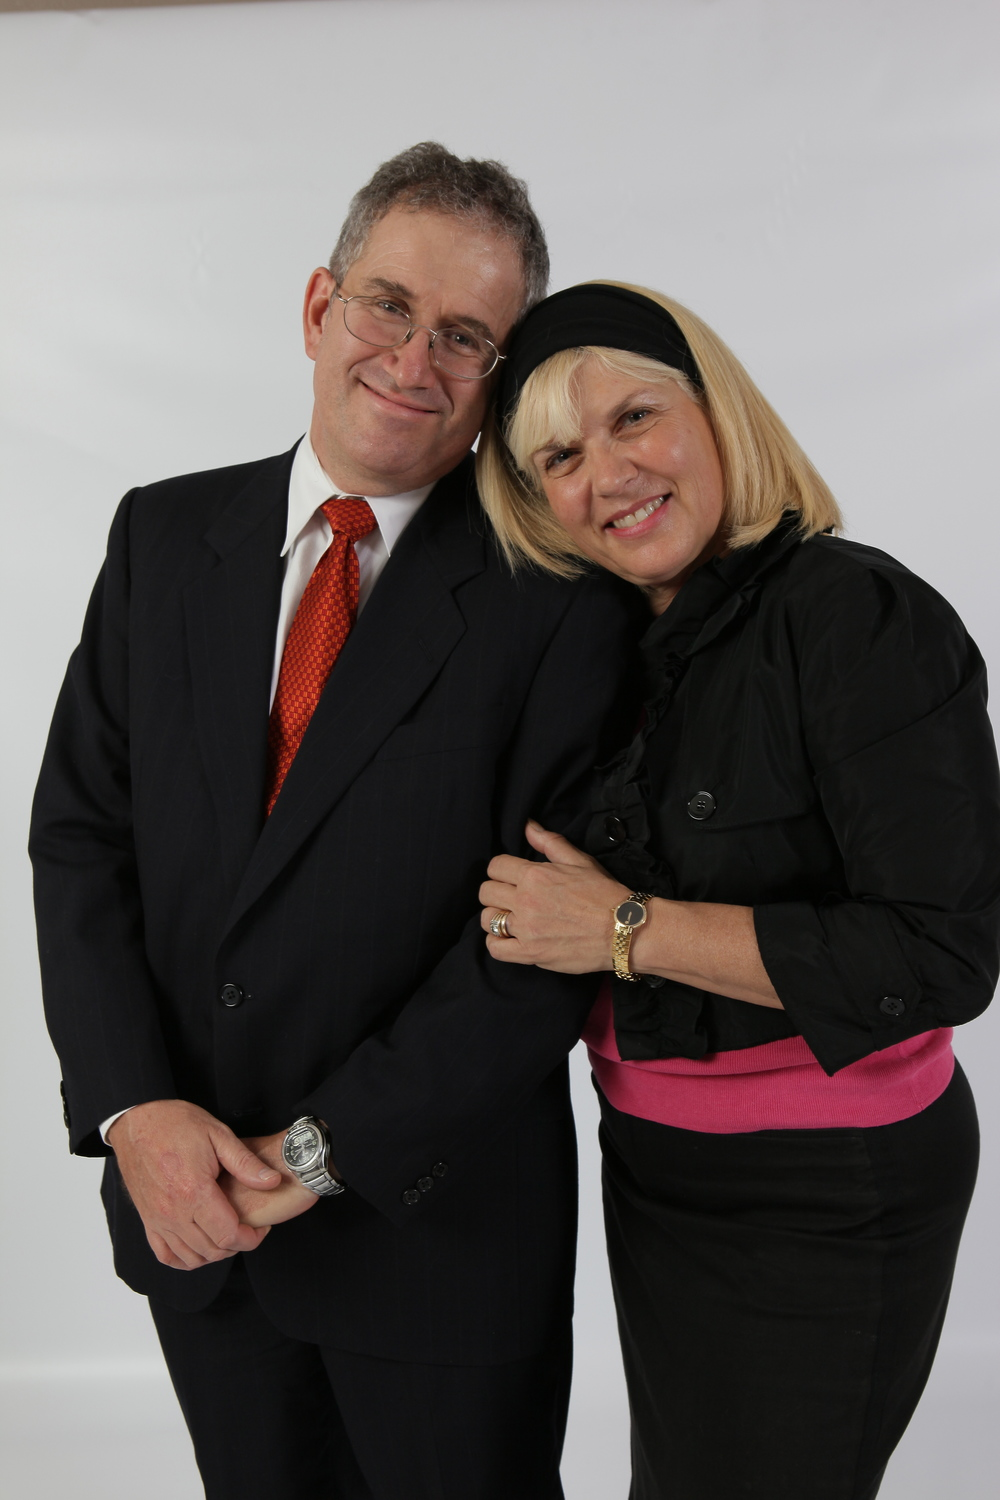 Click photo to download. Caption: Since 2007, Jay Robinow (pictured with his wife, Margie) has built and/or expanded more than 150 sukkot for people across the state of Kansas. Credit: Provided photo.